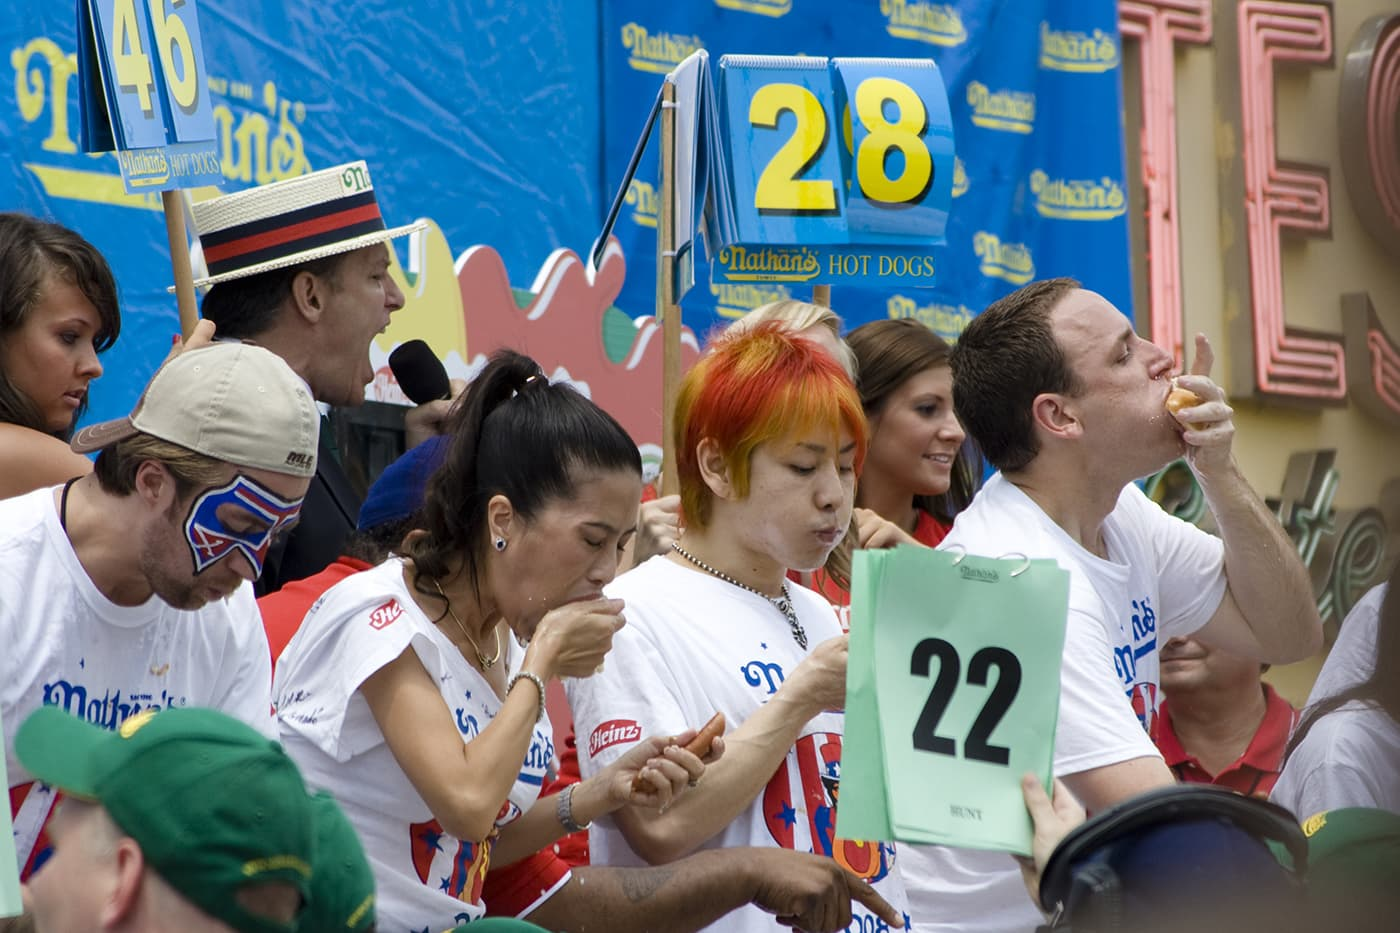 Takeru Kobayashi and Joey Chestnut face off at the 2008 Nathan's Famous Fourth of July hot dog eating contest at Coney Island in New York.